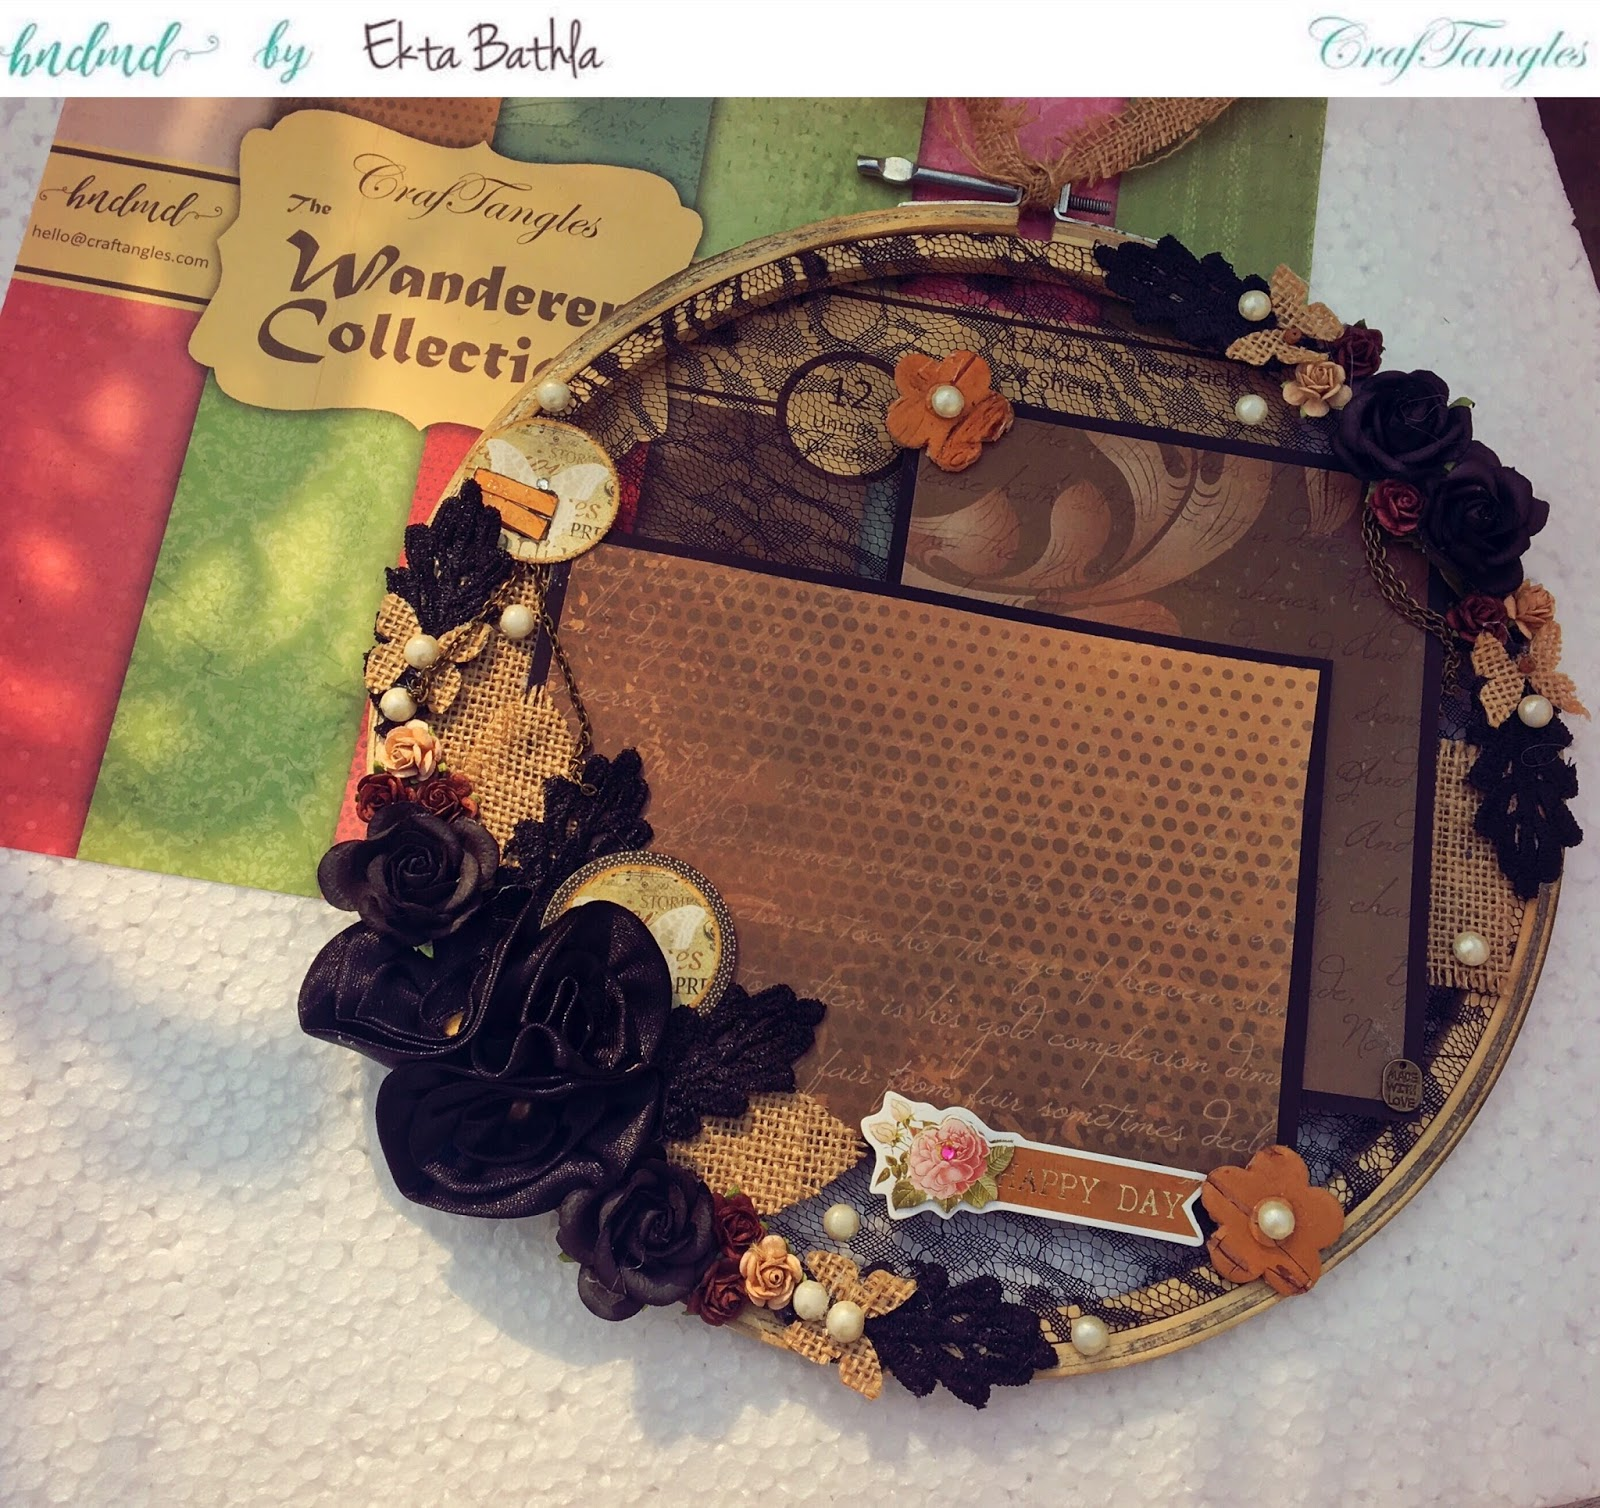 Altered Embroidery Hoop using Wanderer Collection by CrafTangles 4